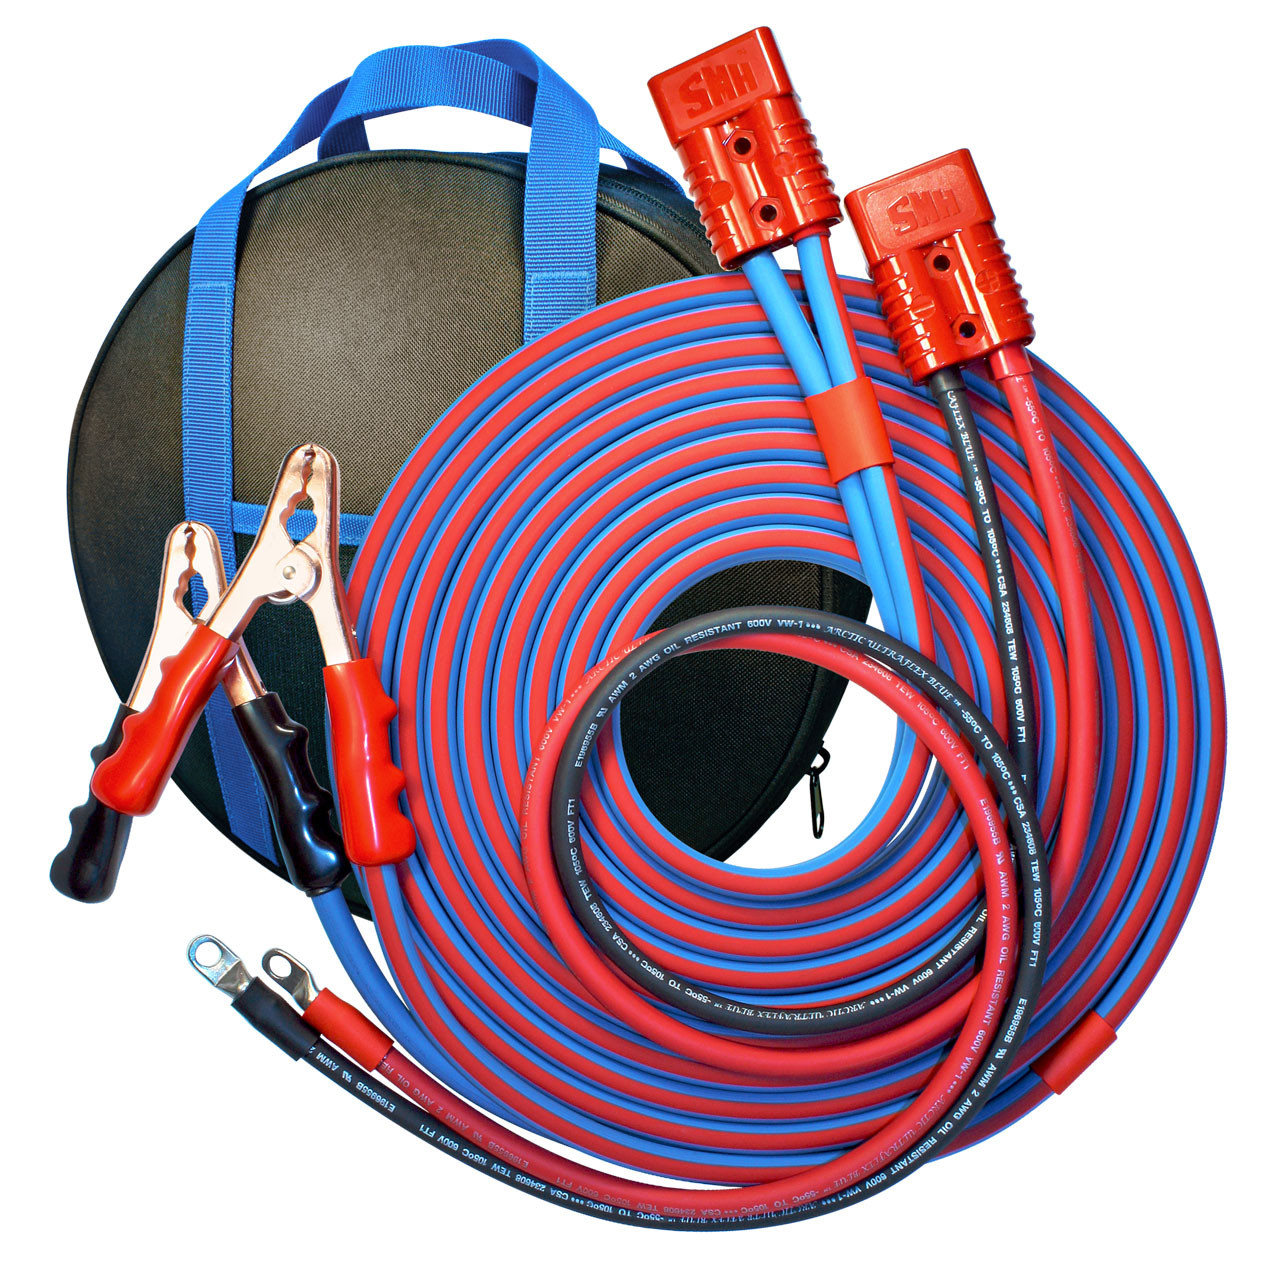 30 cold weather heavy duty jumper cable clamp to harness 2 gauge booster system [ 1280 x 1280 Pixel ]